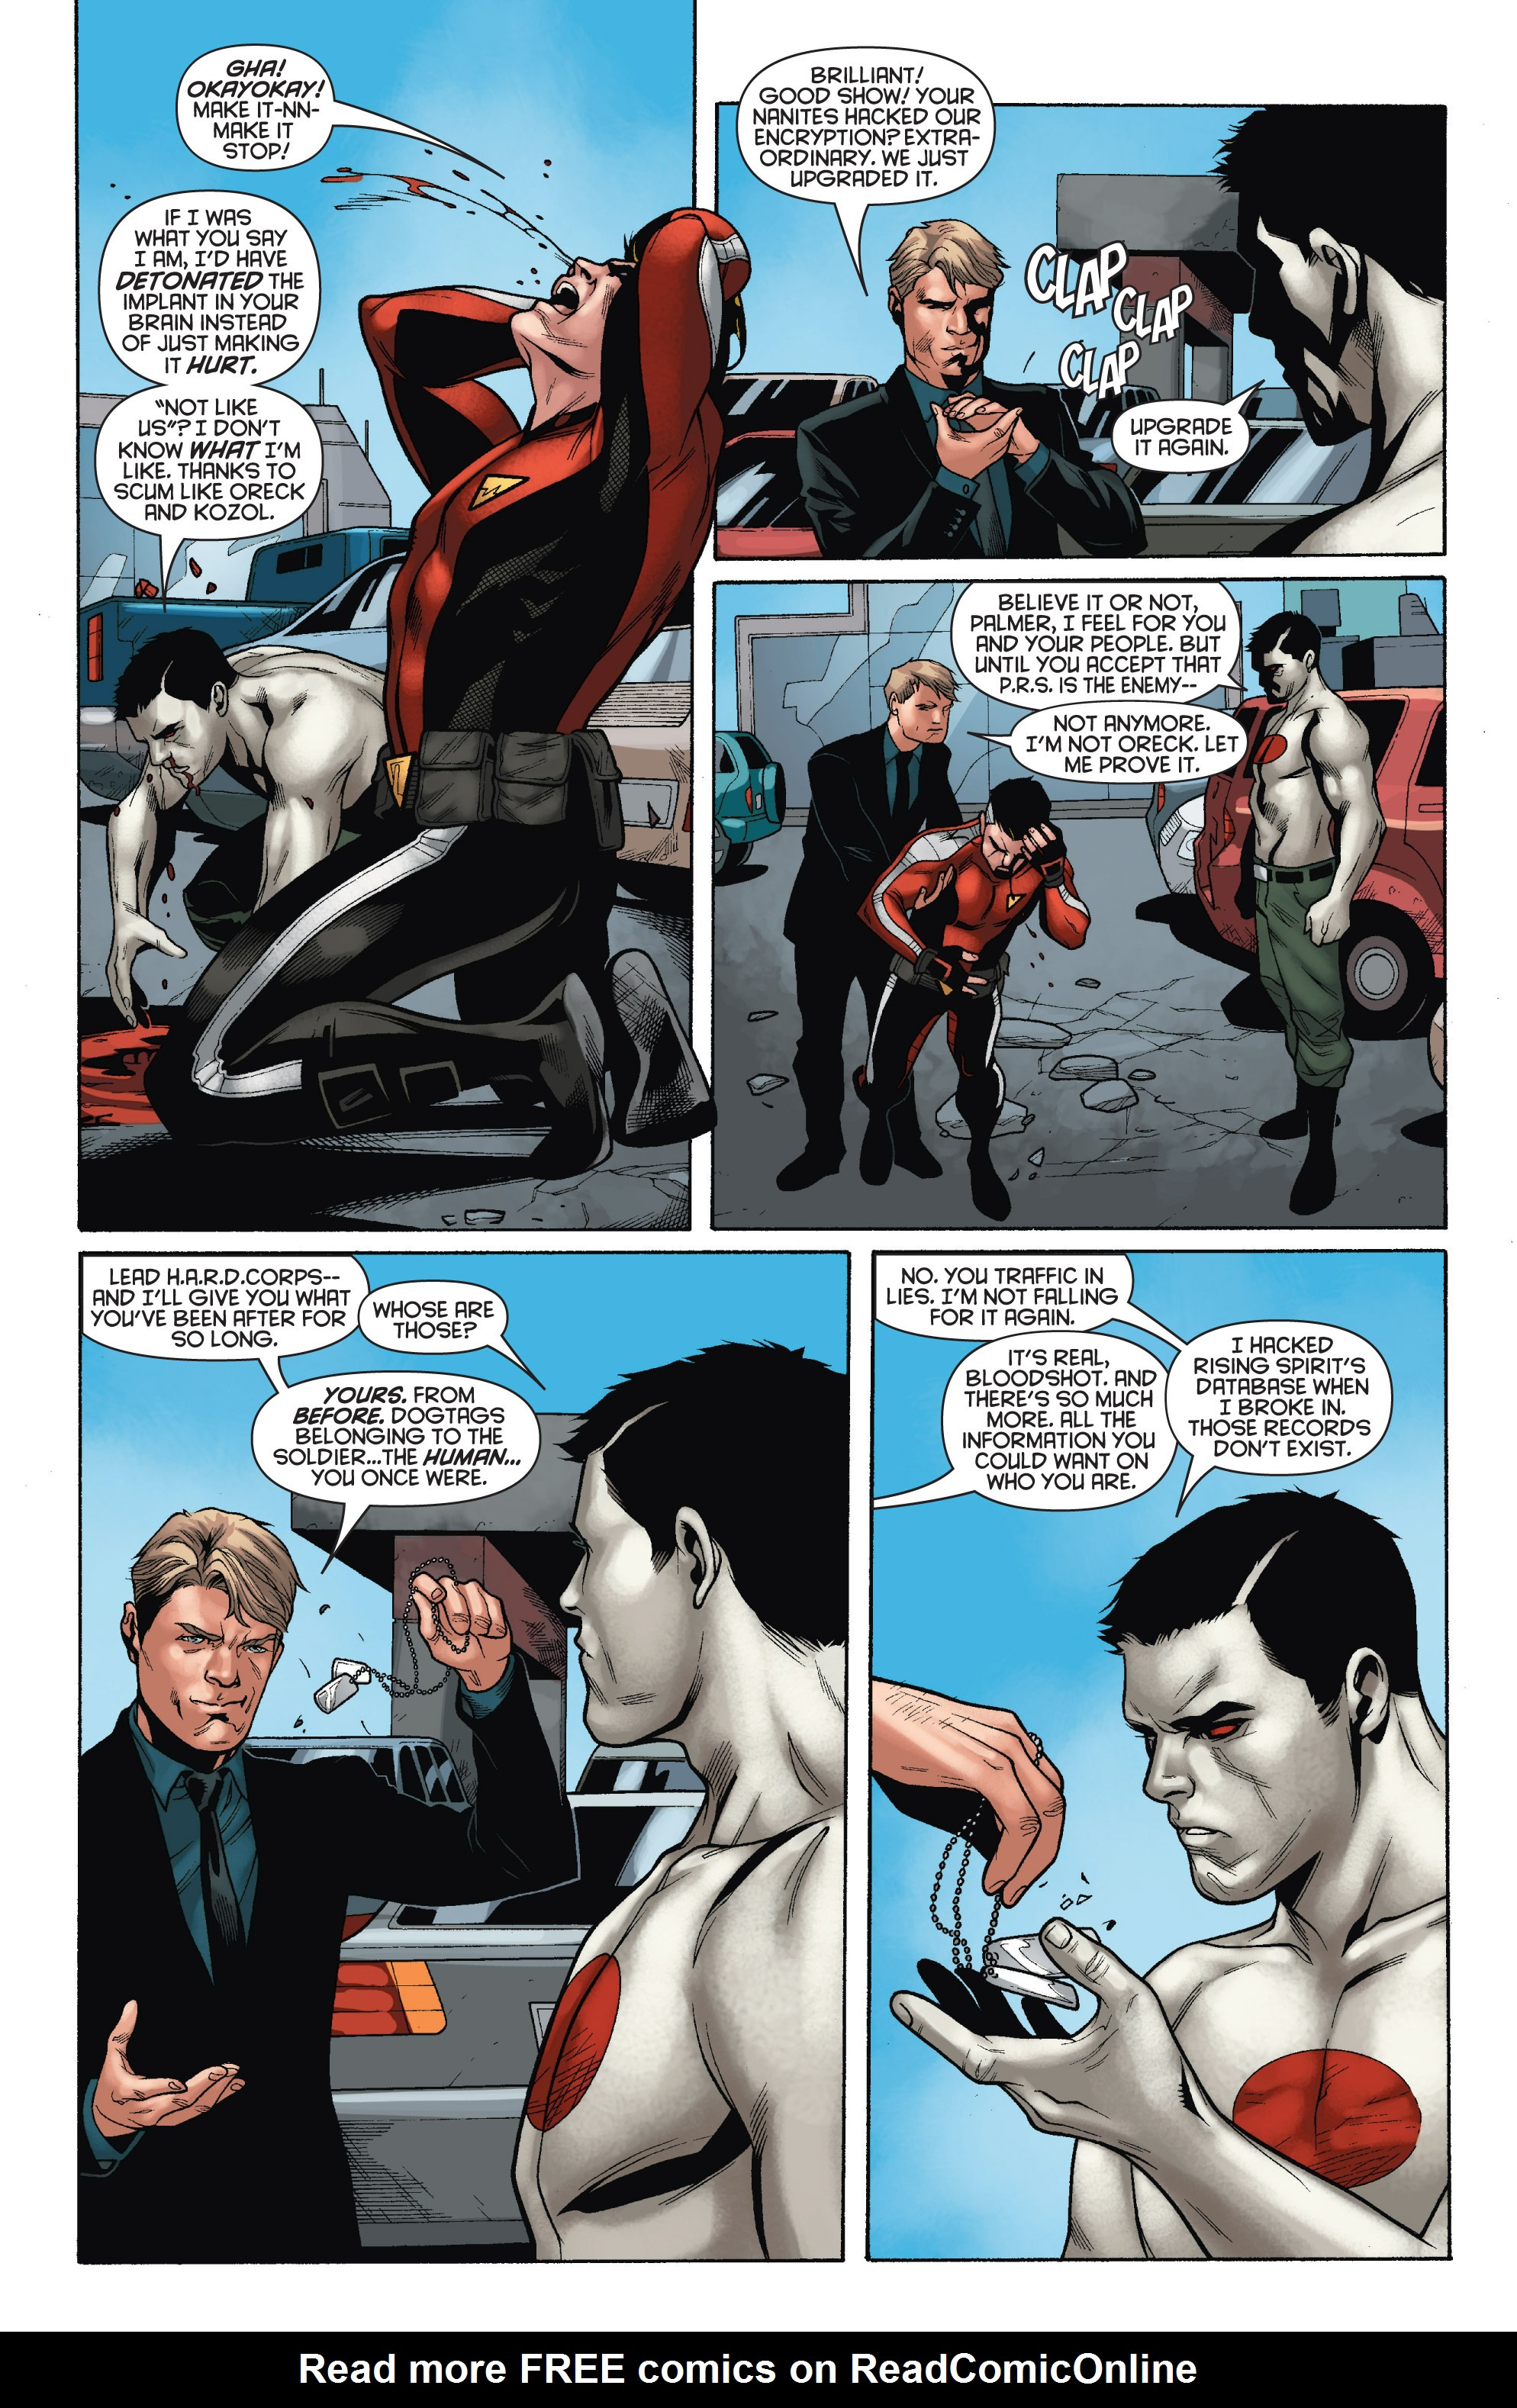 Read online Bloodshot and H.A.R.D.Corps comic -  Issue # TPB 4 - 48